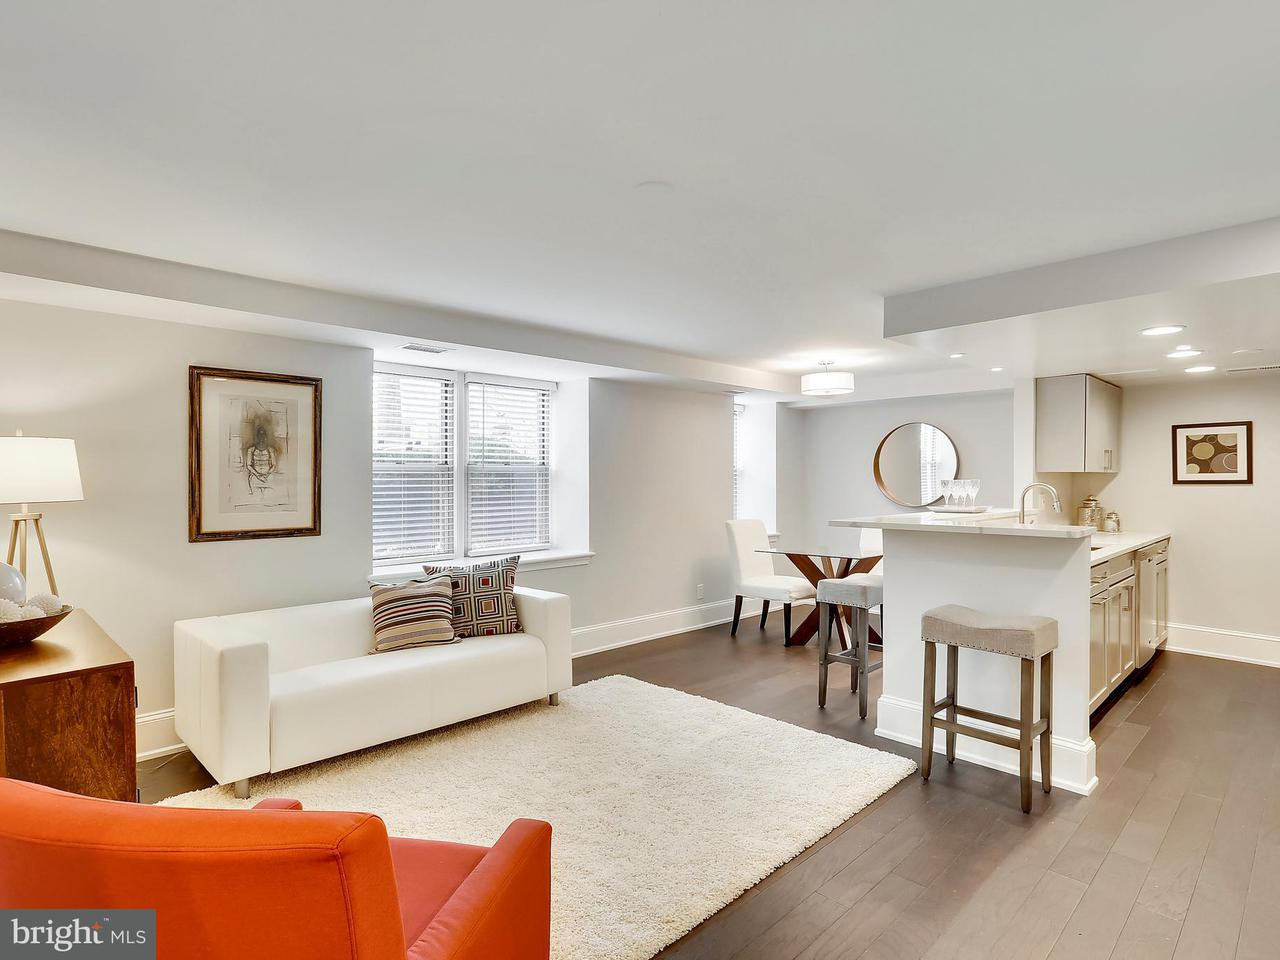 Condominium for Sale at 2129 Florida Ave NW #l1 Washington, District Of Columbia 20008 United States